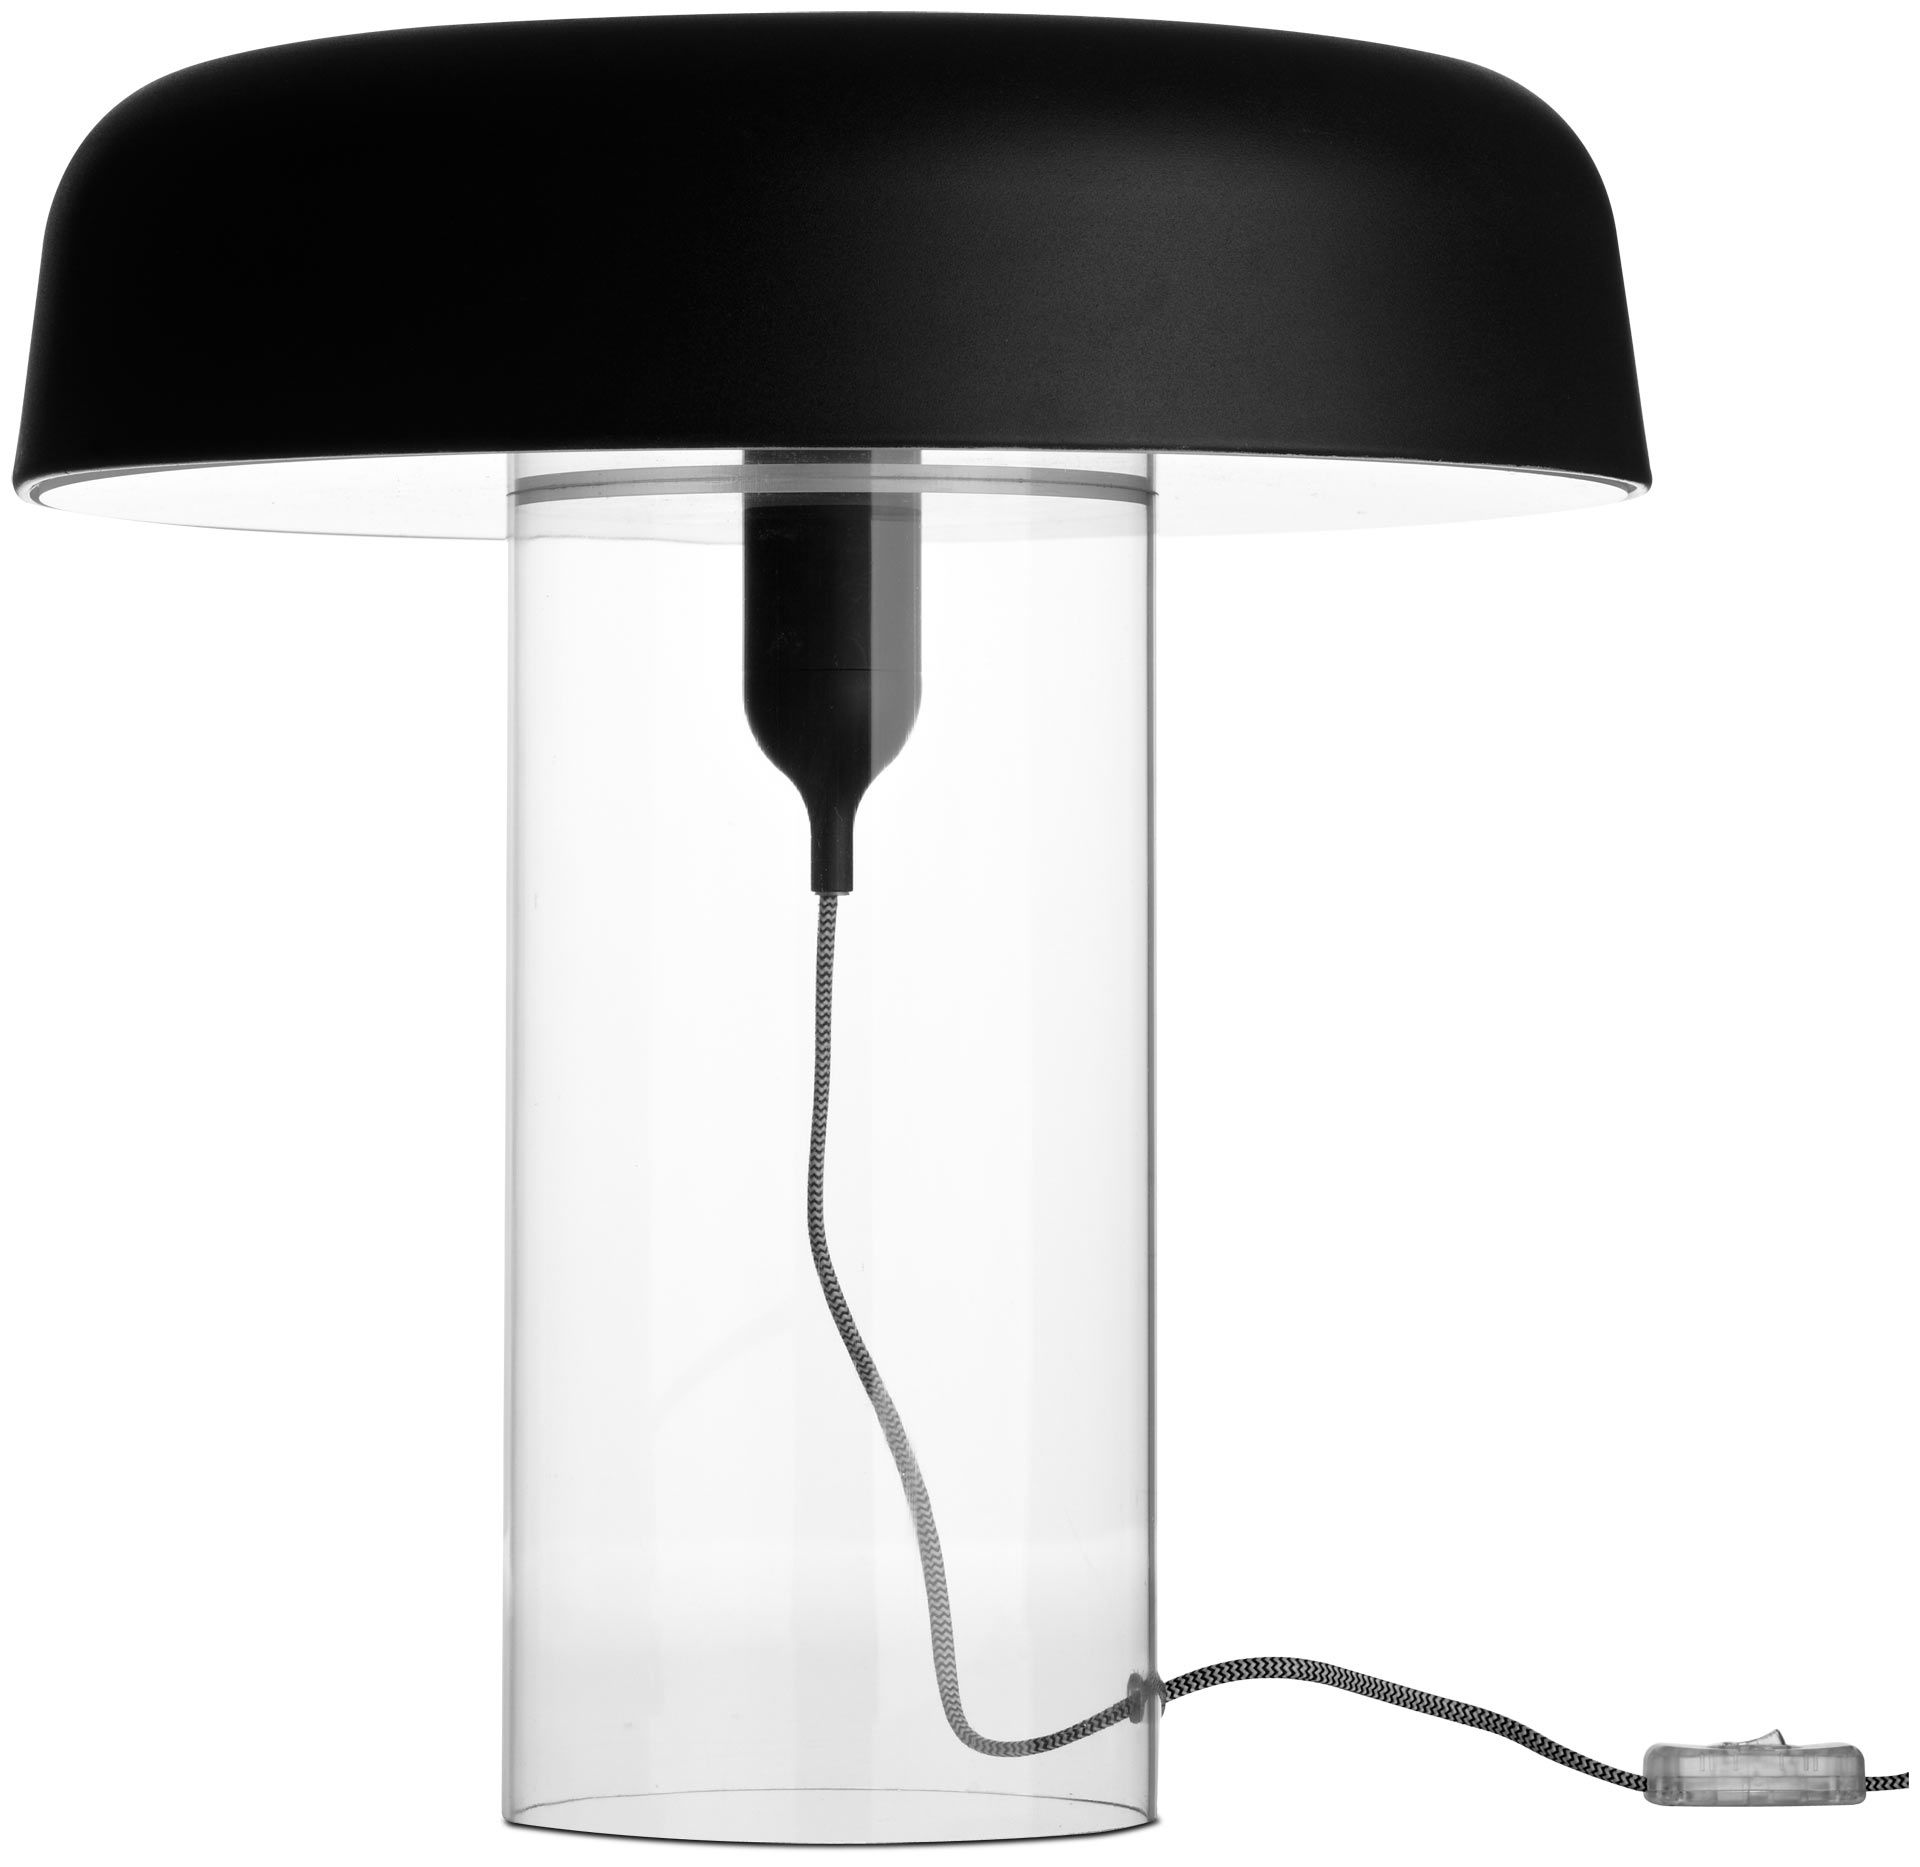 Modern Table Lamps Quality From Boconcept Http Www Boconceptnw Com Modern Lamp Lamp Decor Modern Table Lamp